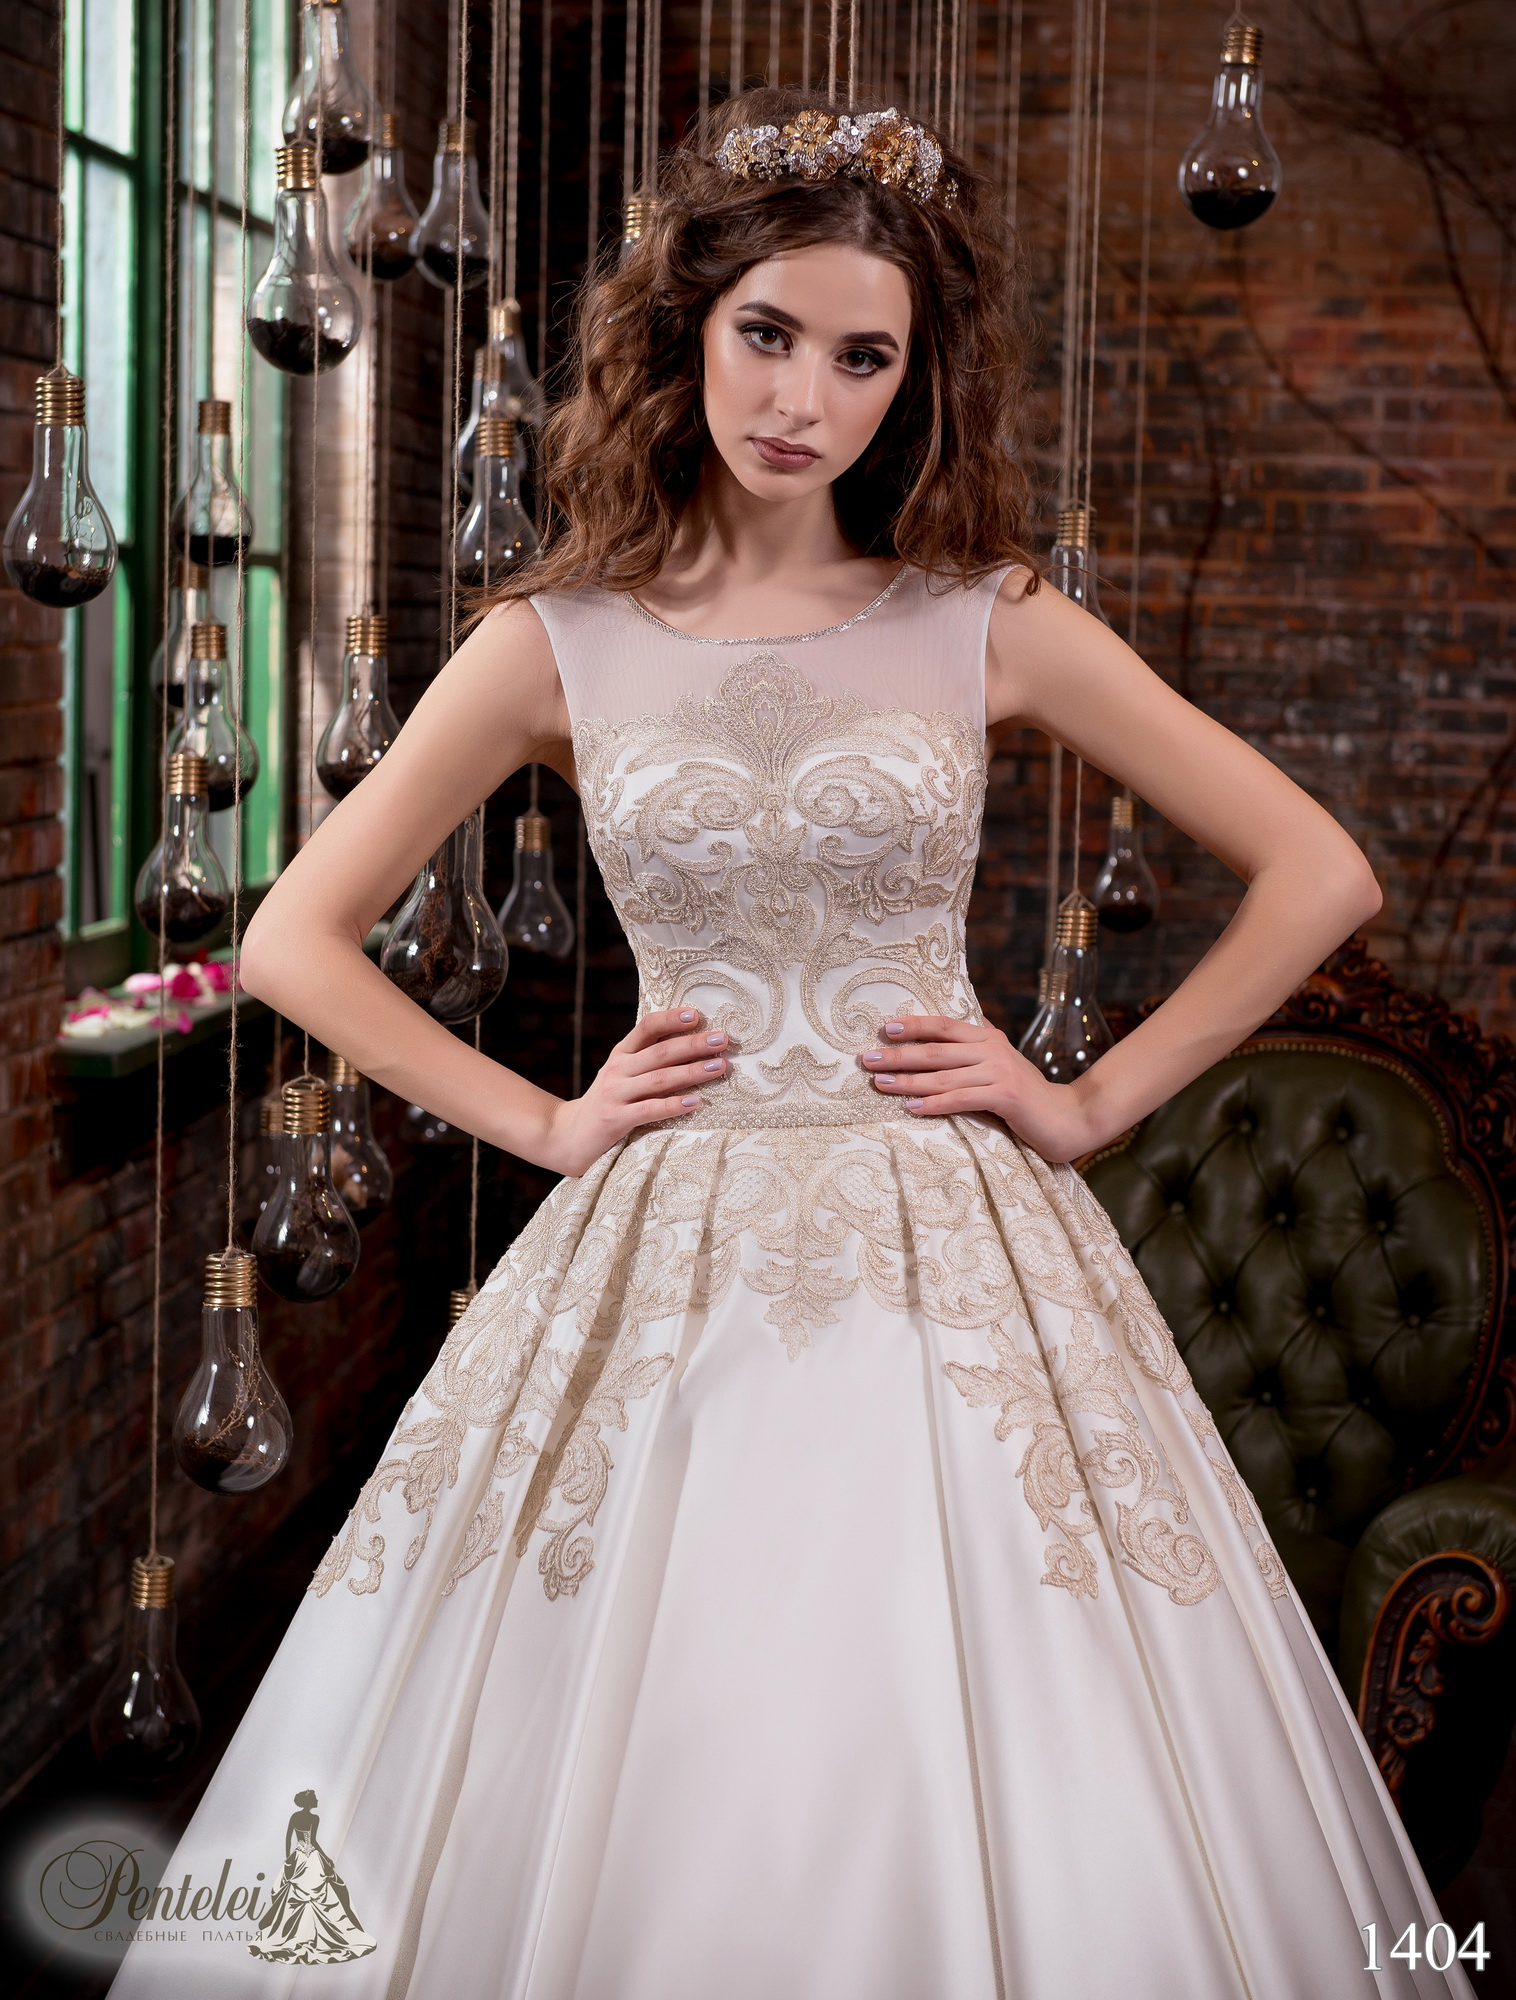 1404 | Buy wedding dresses wholesale from Pentelei